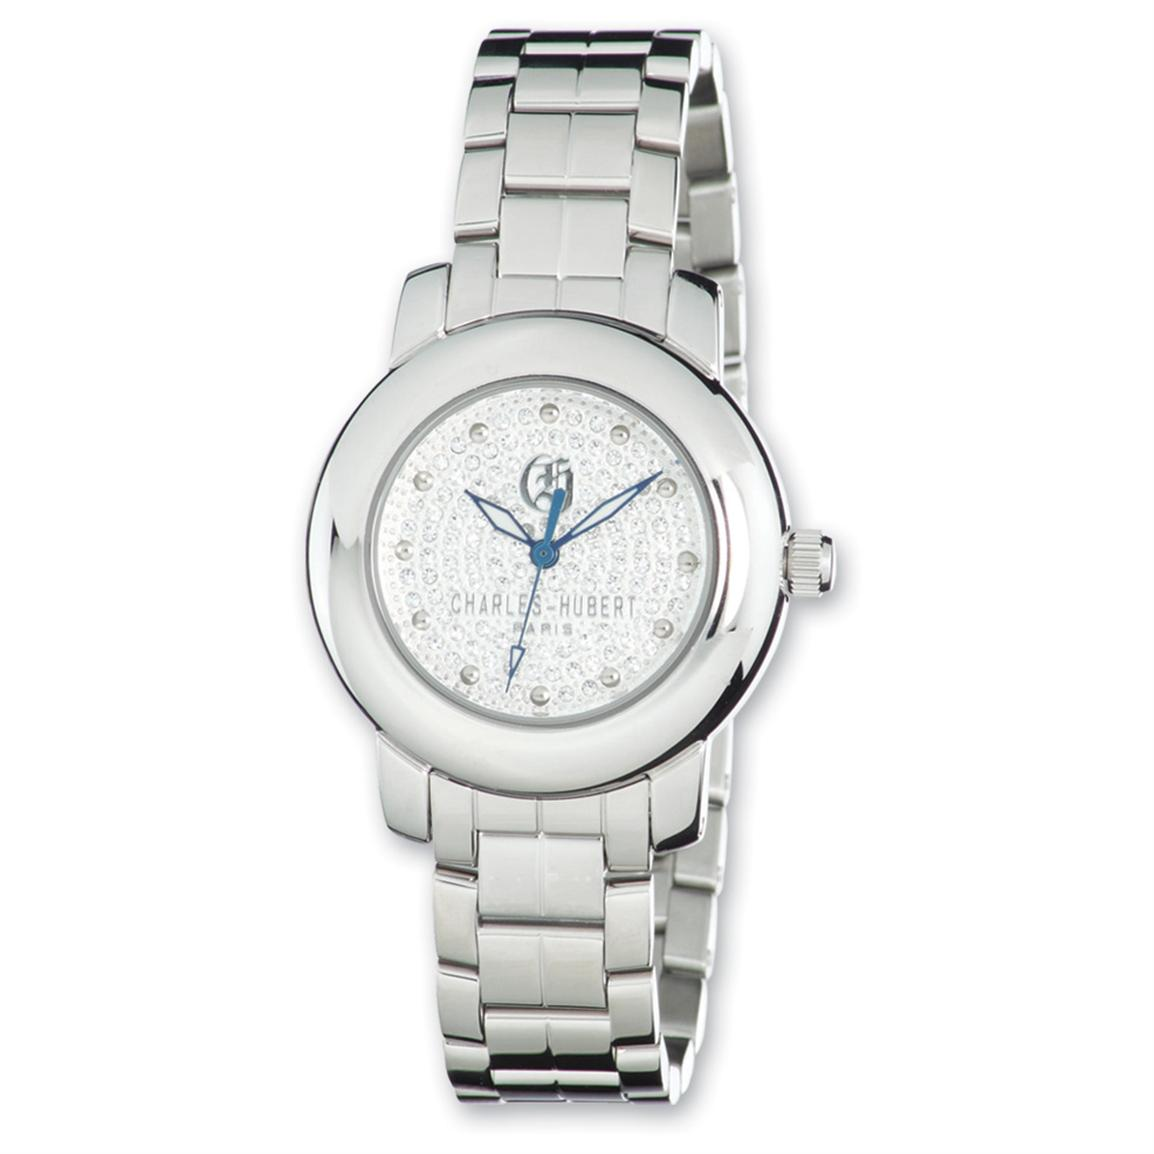 Women's Charles-Hubert® Swarovski® Crystal Dial Watch, Stainless Steel